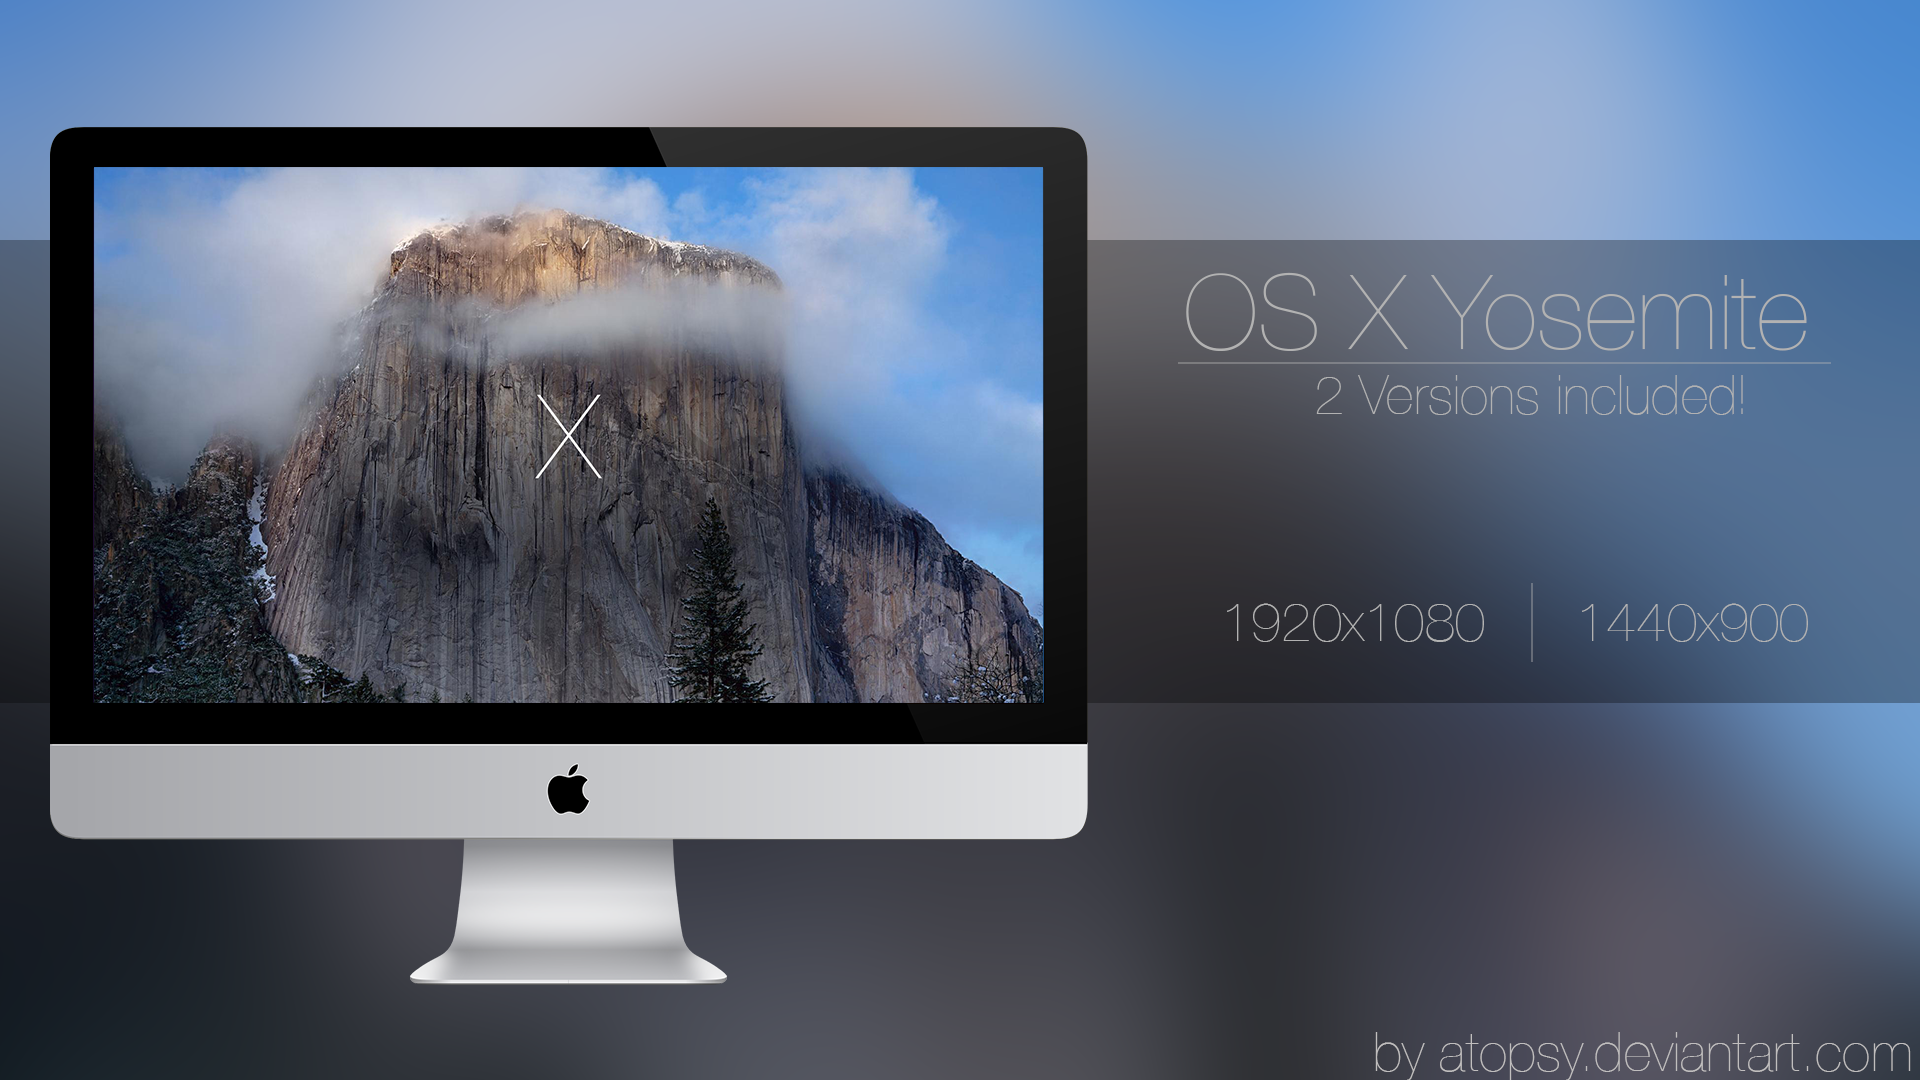 by atopsy os x yosemite wallpaper updated by atopsy